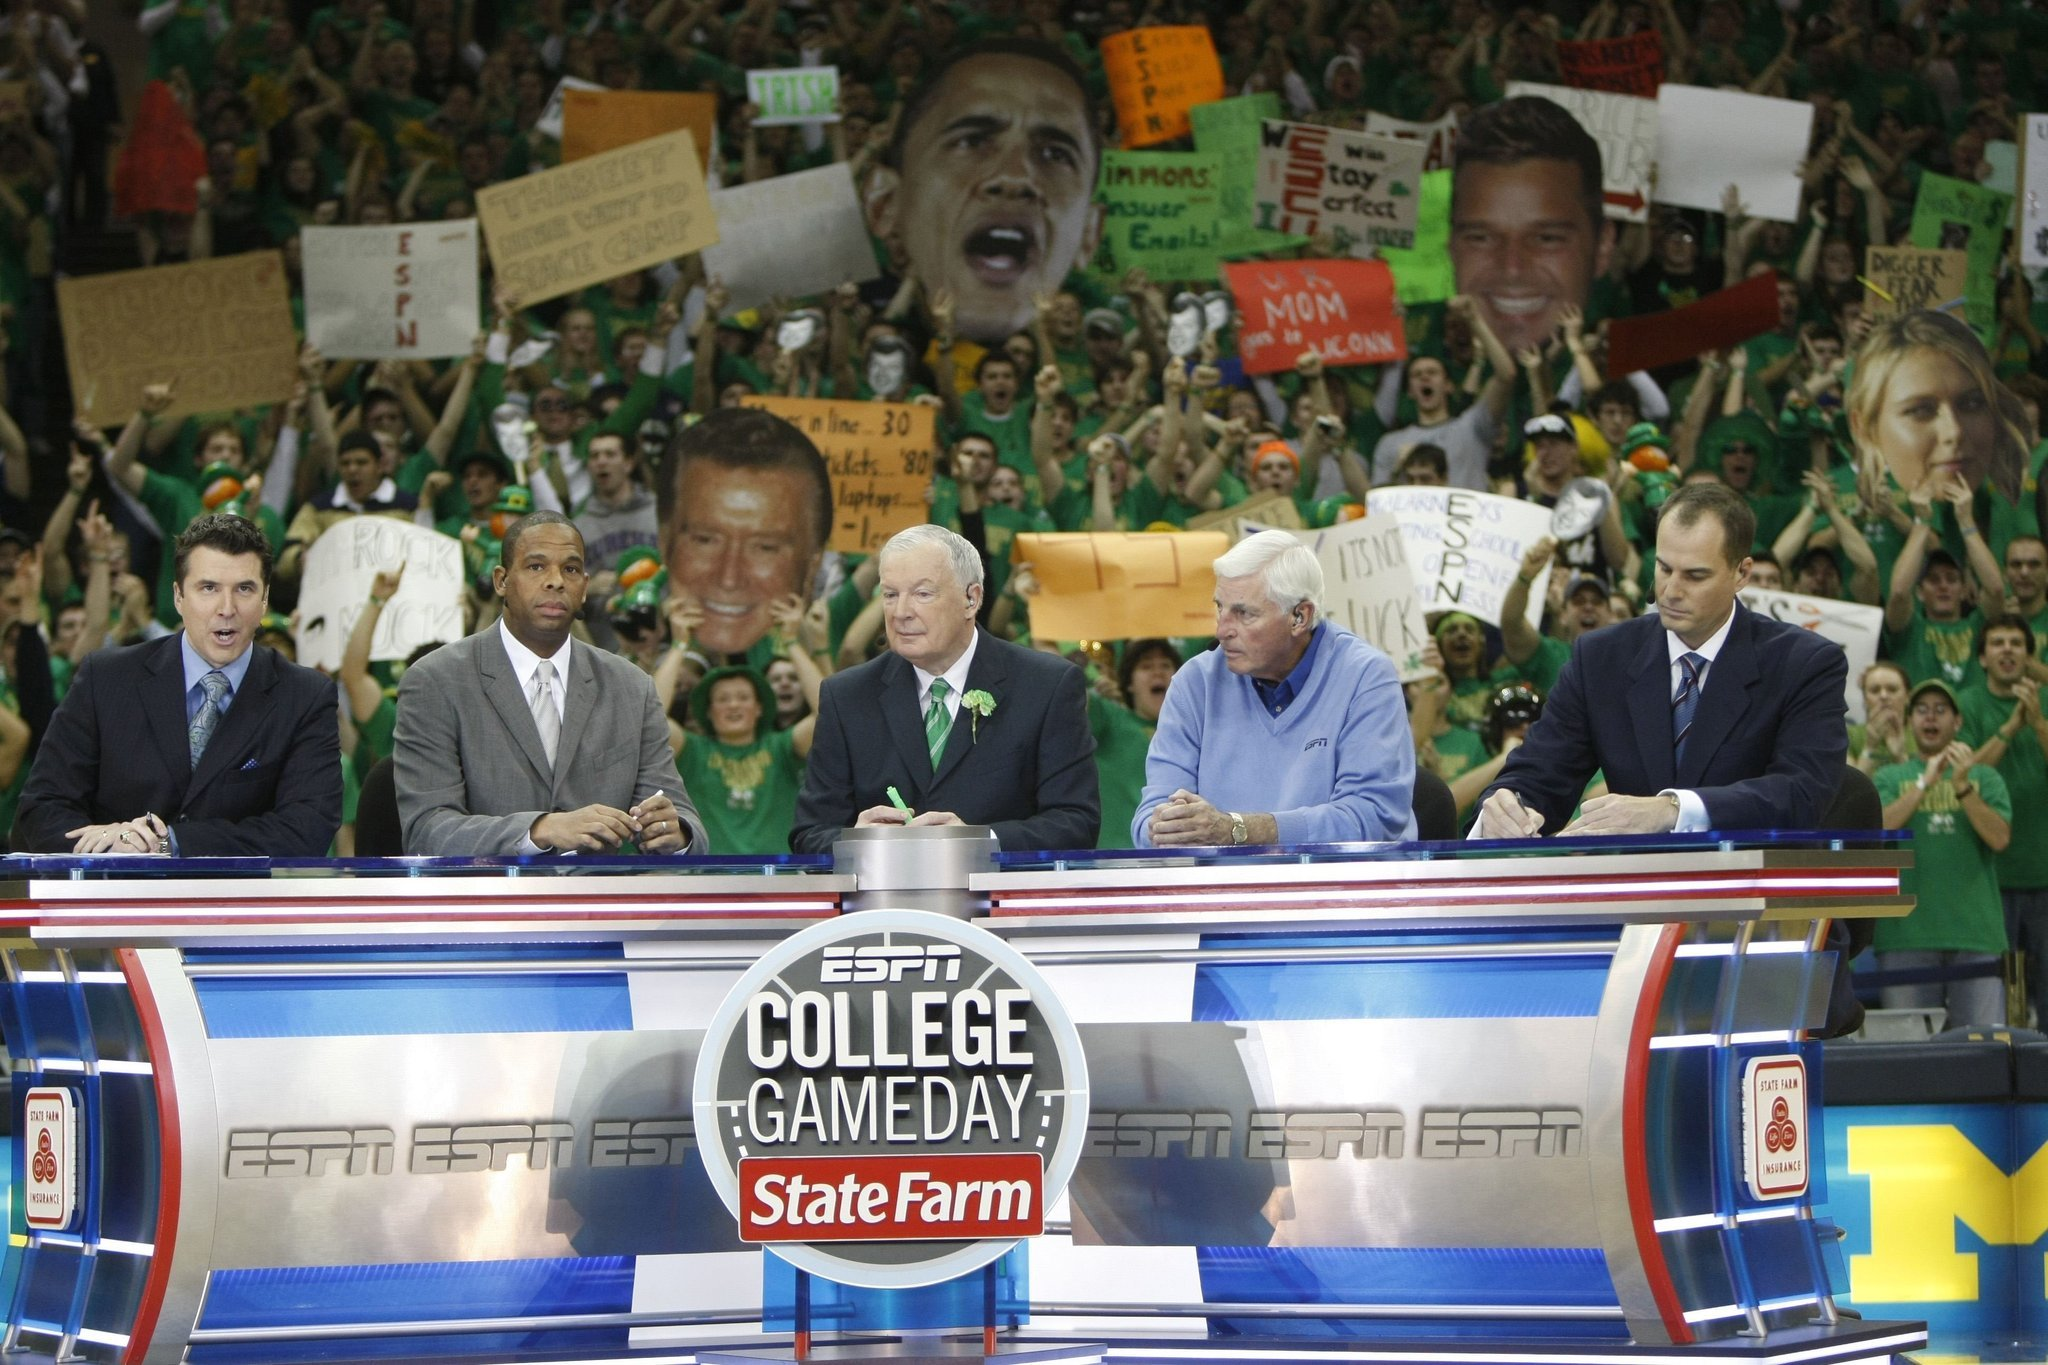 Ct-college-gameday-notre-dame-20160130